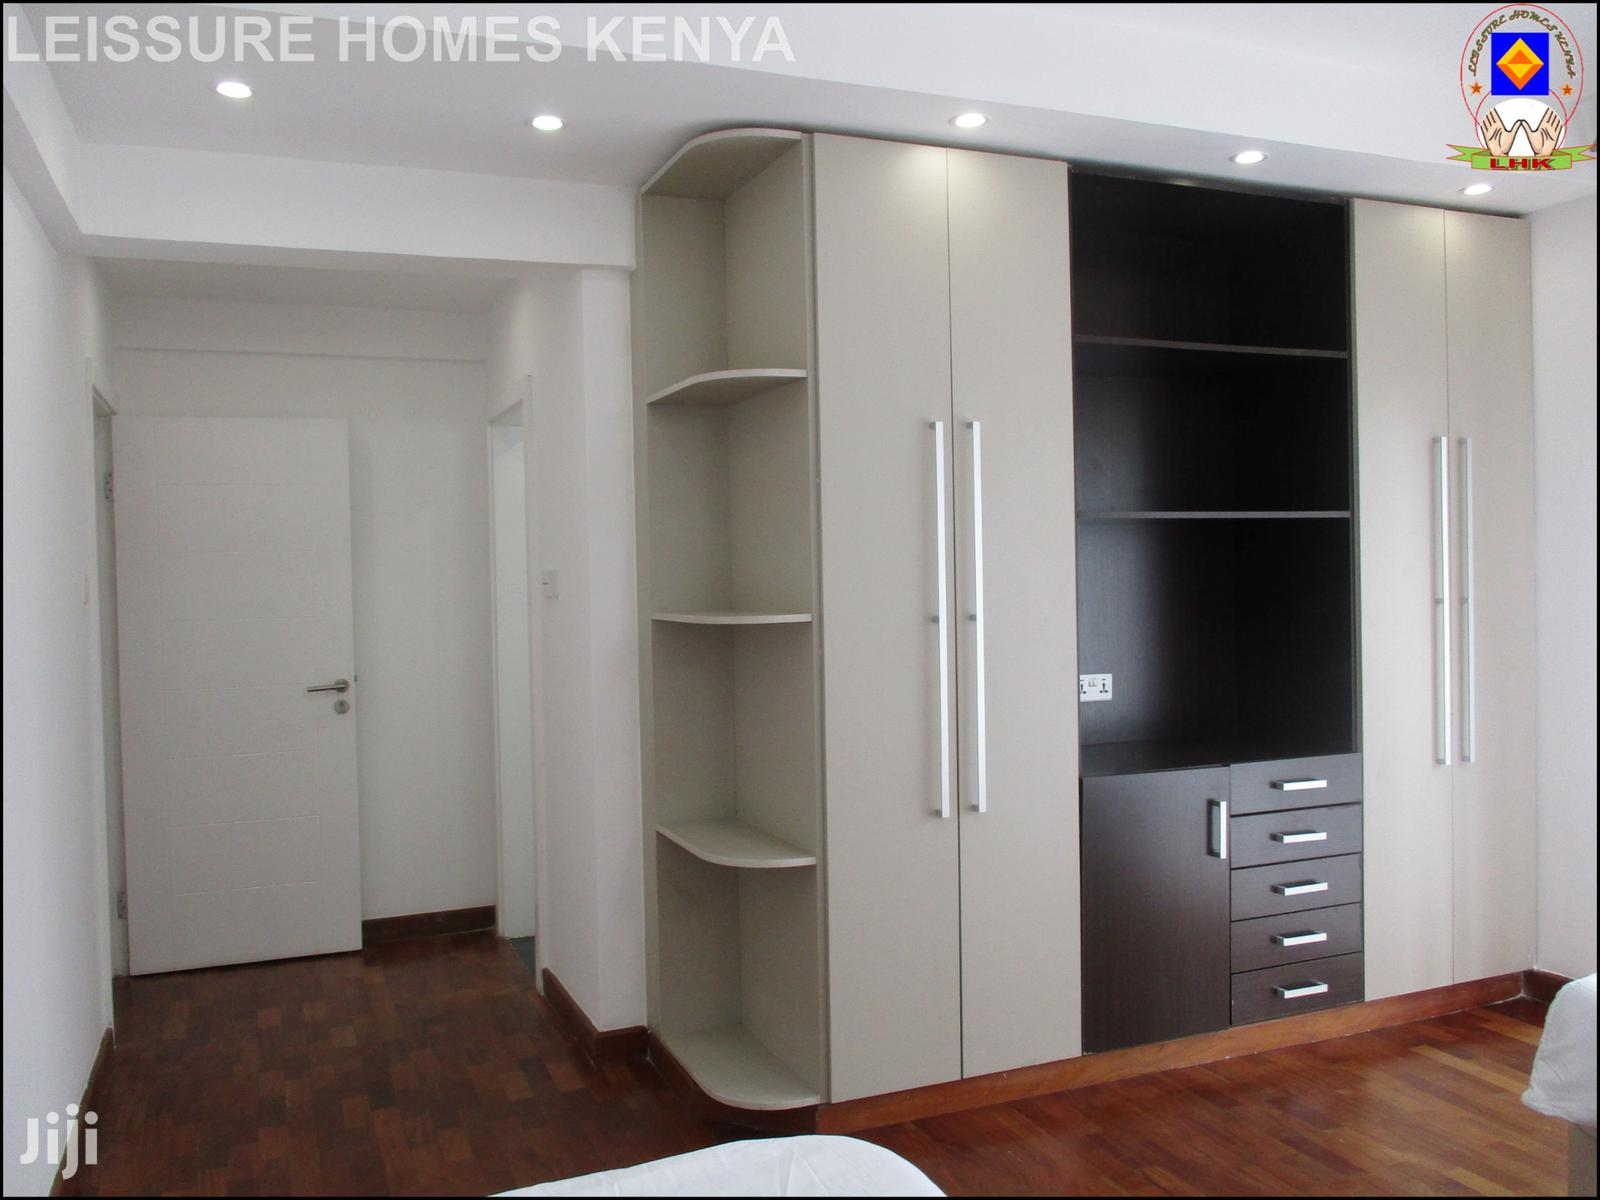 3 Bedroom All Ensuite Modern Apartment With Sq in Kileleshwa | Houses & Apartments For Sale for sale in Kileleshwa, Nairobi, Kenya